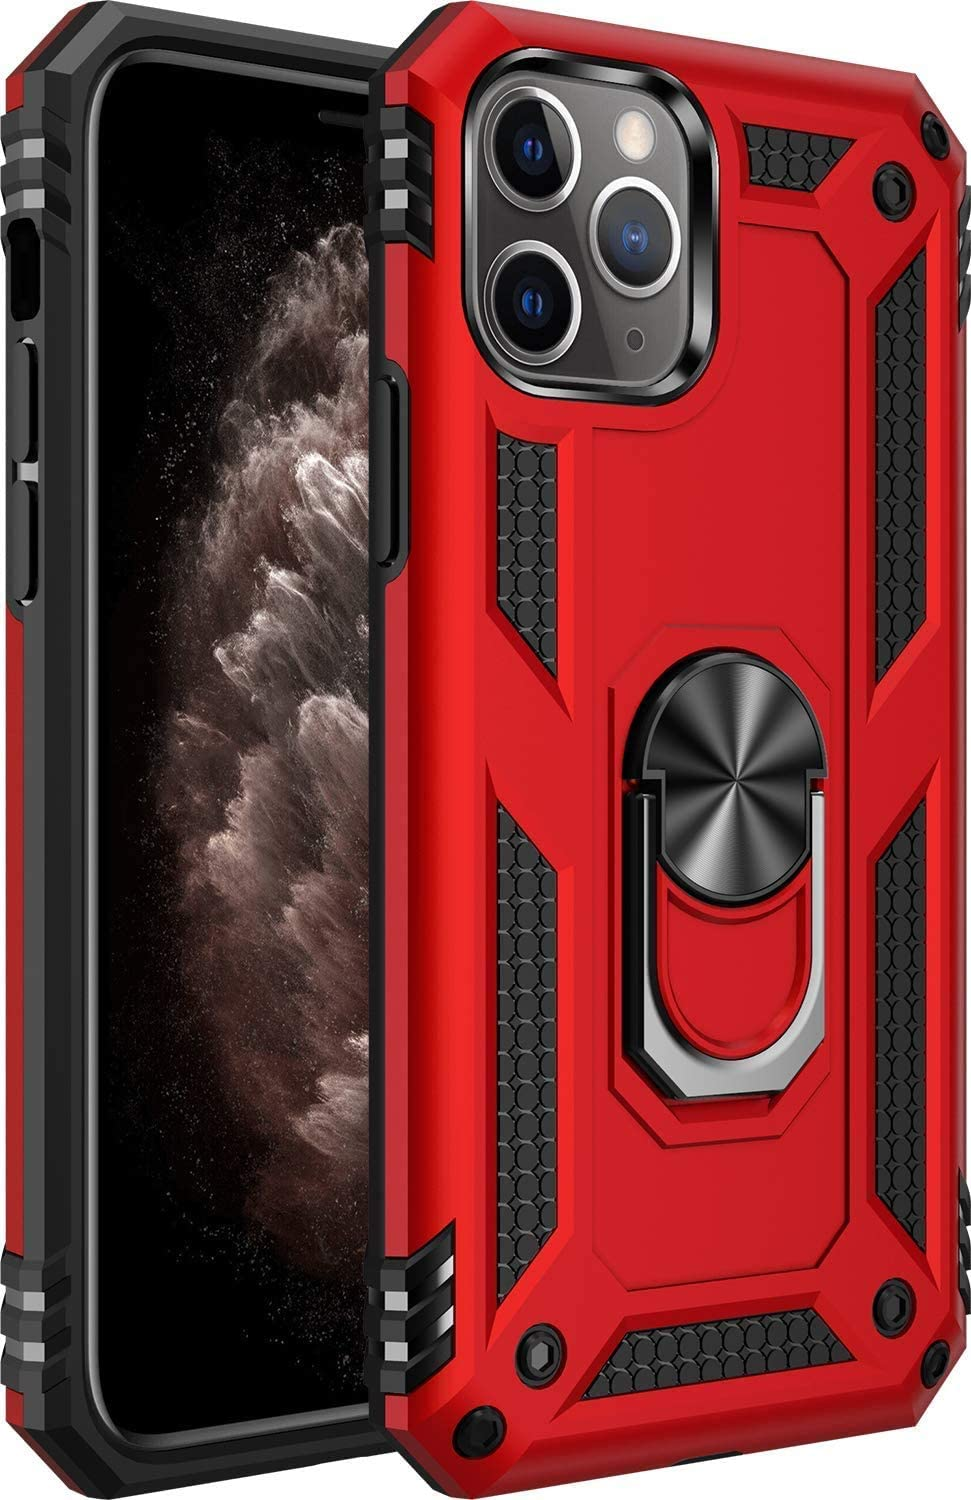 KAIET iPhone 8 Case | iPhone 7 Case [ Military Grade ] 15ft. Drop Tested Protective Case | Kickstand | Phone Case | Compatible with Apple iPhone 8 / iPhone 7 (iPhone 7/8)